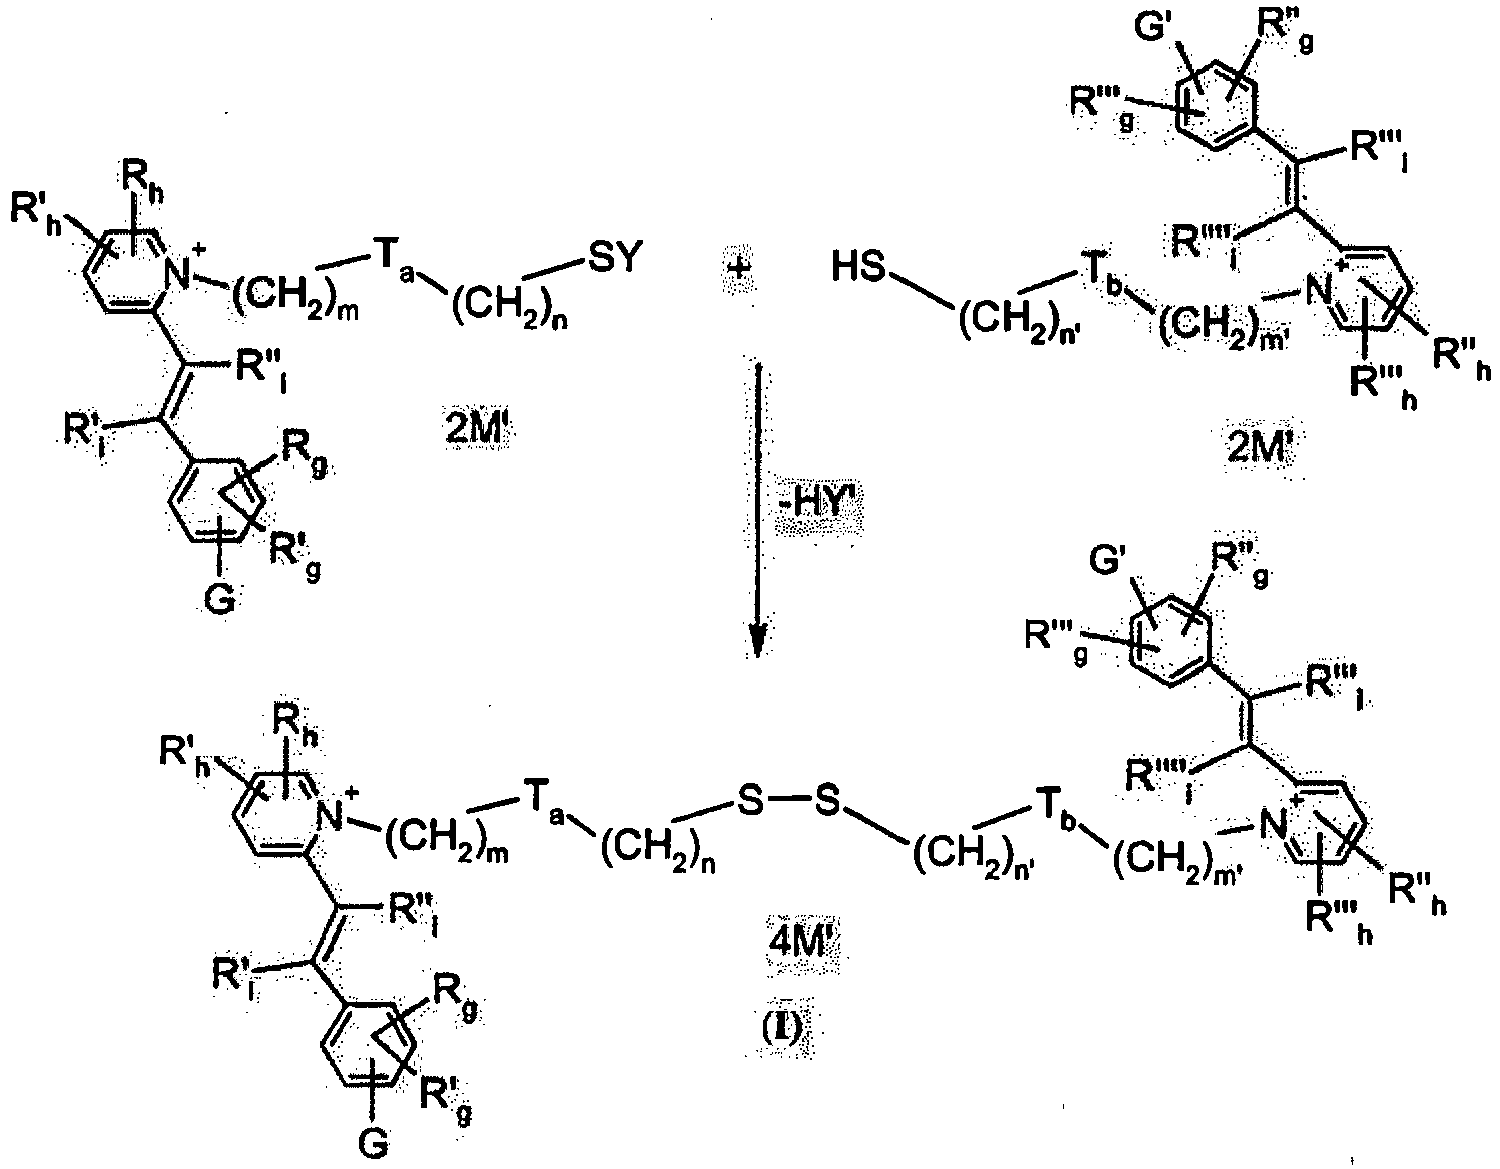 ep2001960b1 dyeing position containing a thiol disulphide  r h r l r l r l r l g g m m n n